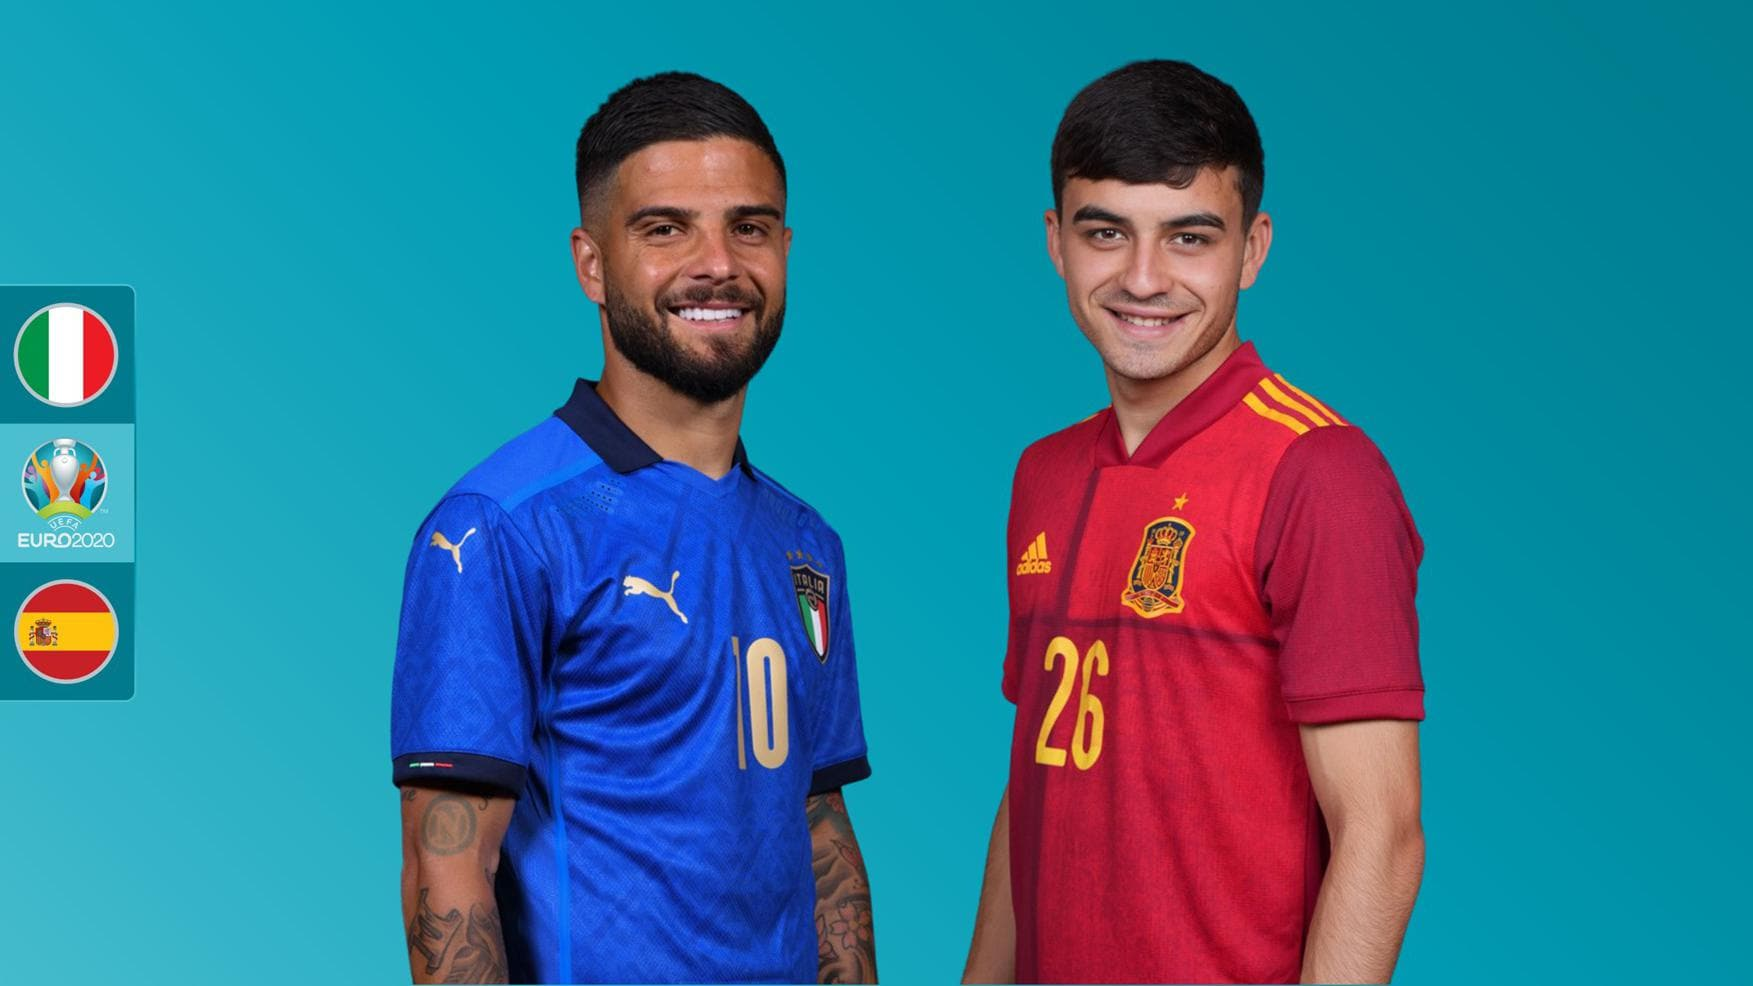 Italy vs Spain UEFA EURO 2020 preview: where to watch, TV channels and live streams, team news, form guide